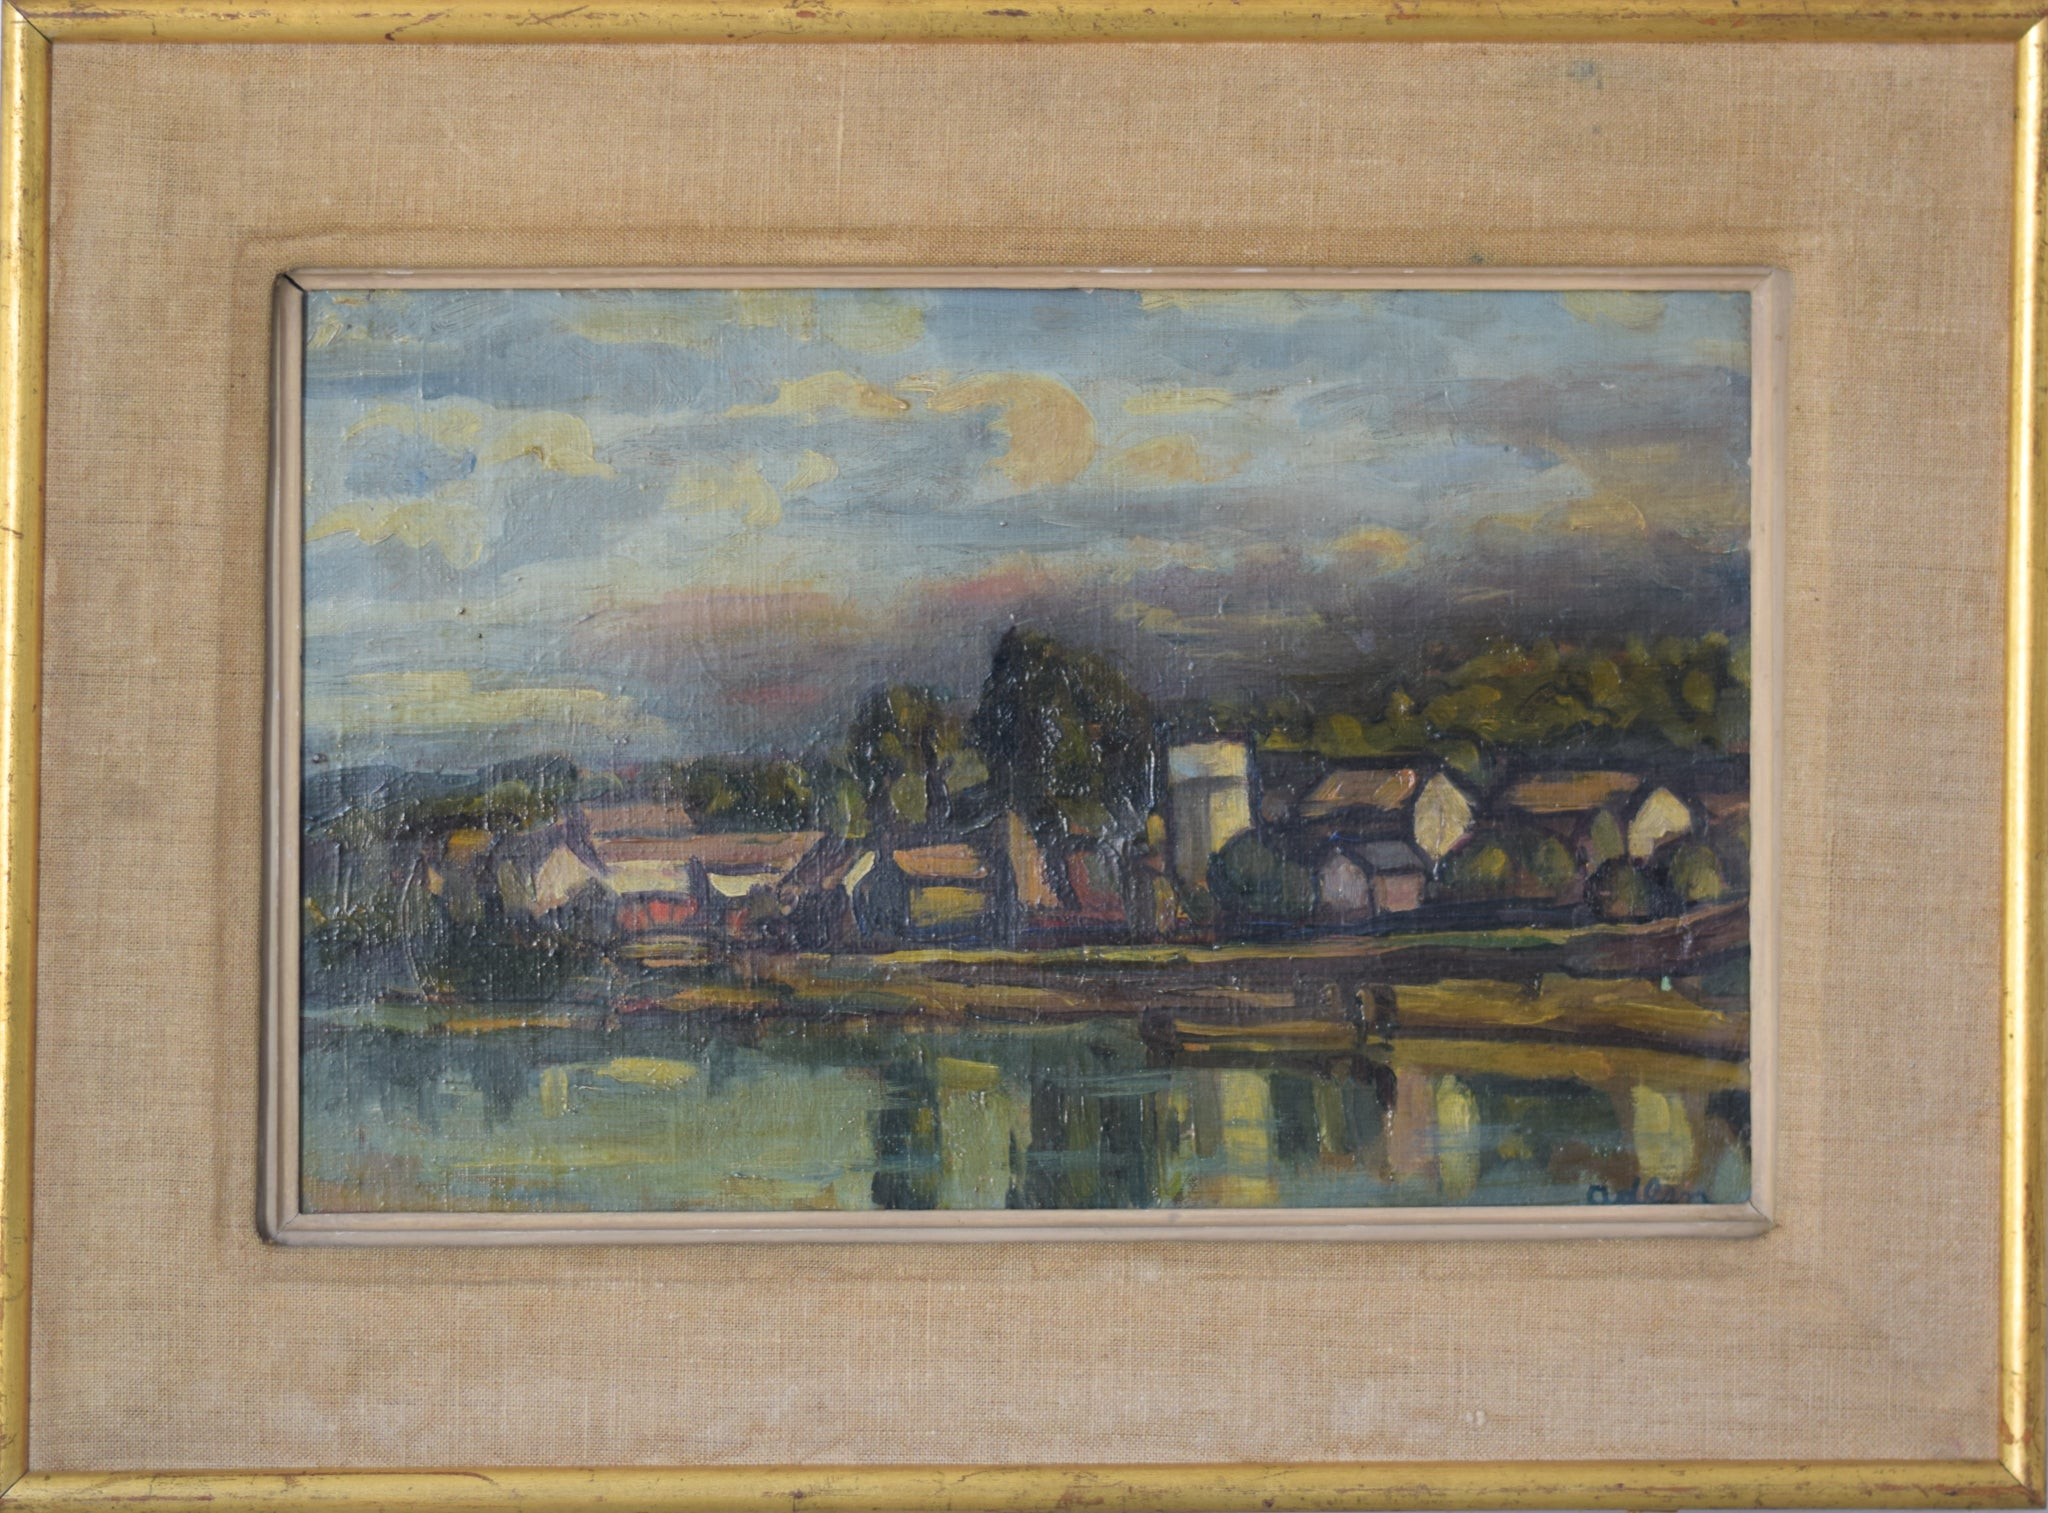 Landscape in Chaufour, France with a view of the Village and River_Framed